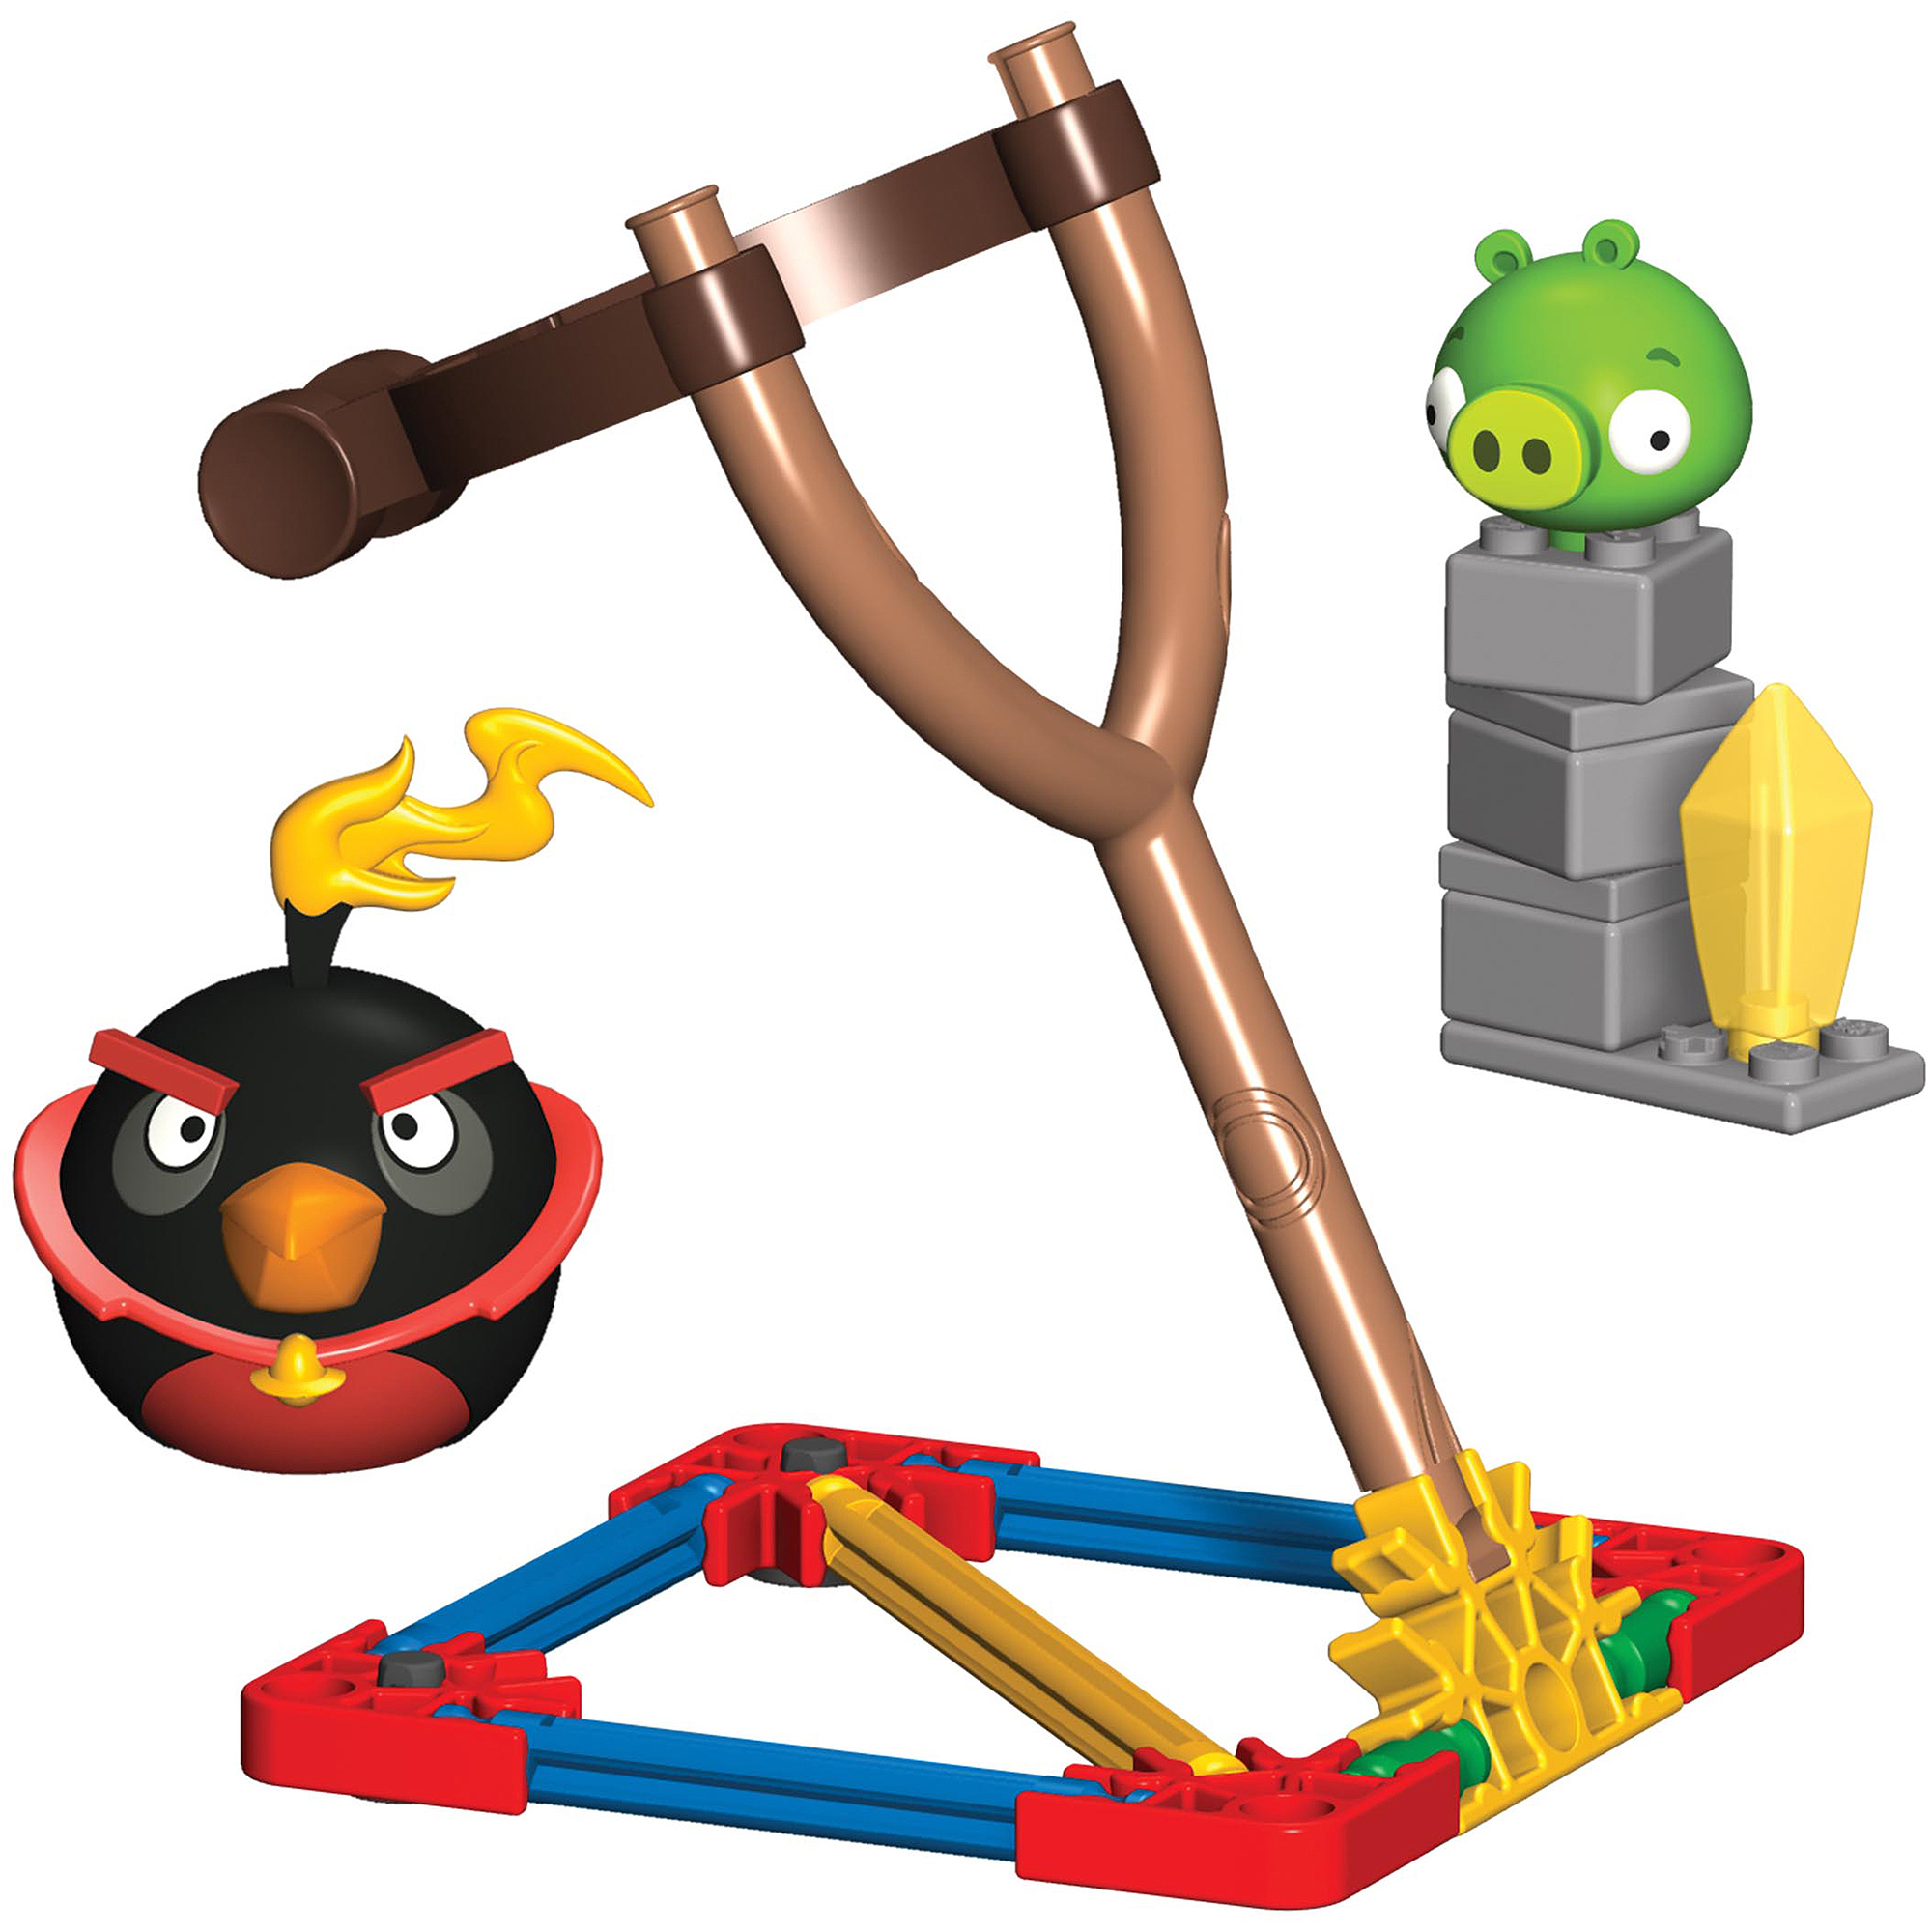 K'NEX Angry Birds Space Building Set: Fire Bomb Bird vs. Small Minion Pig